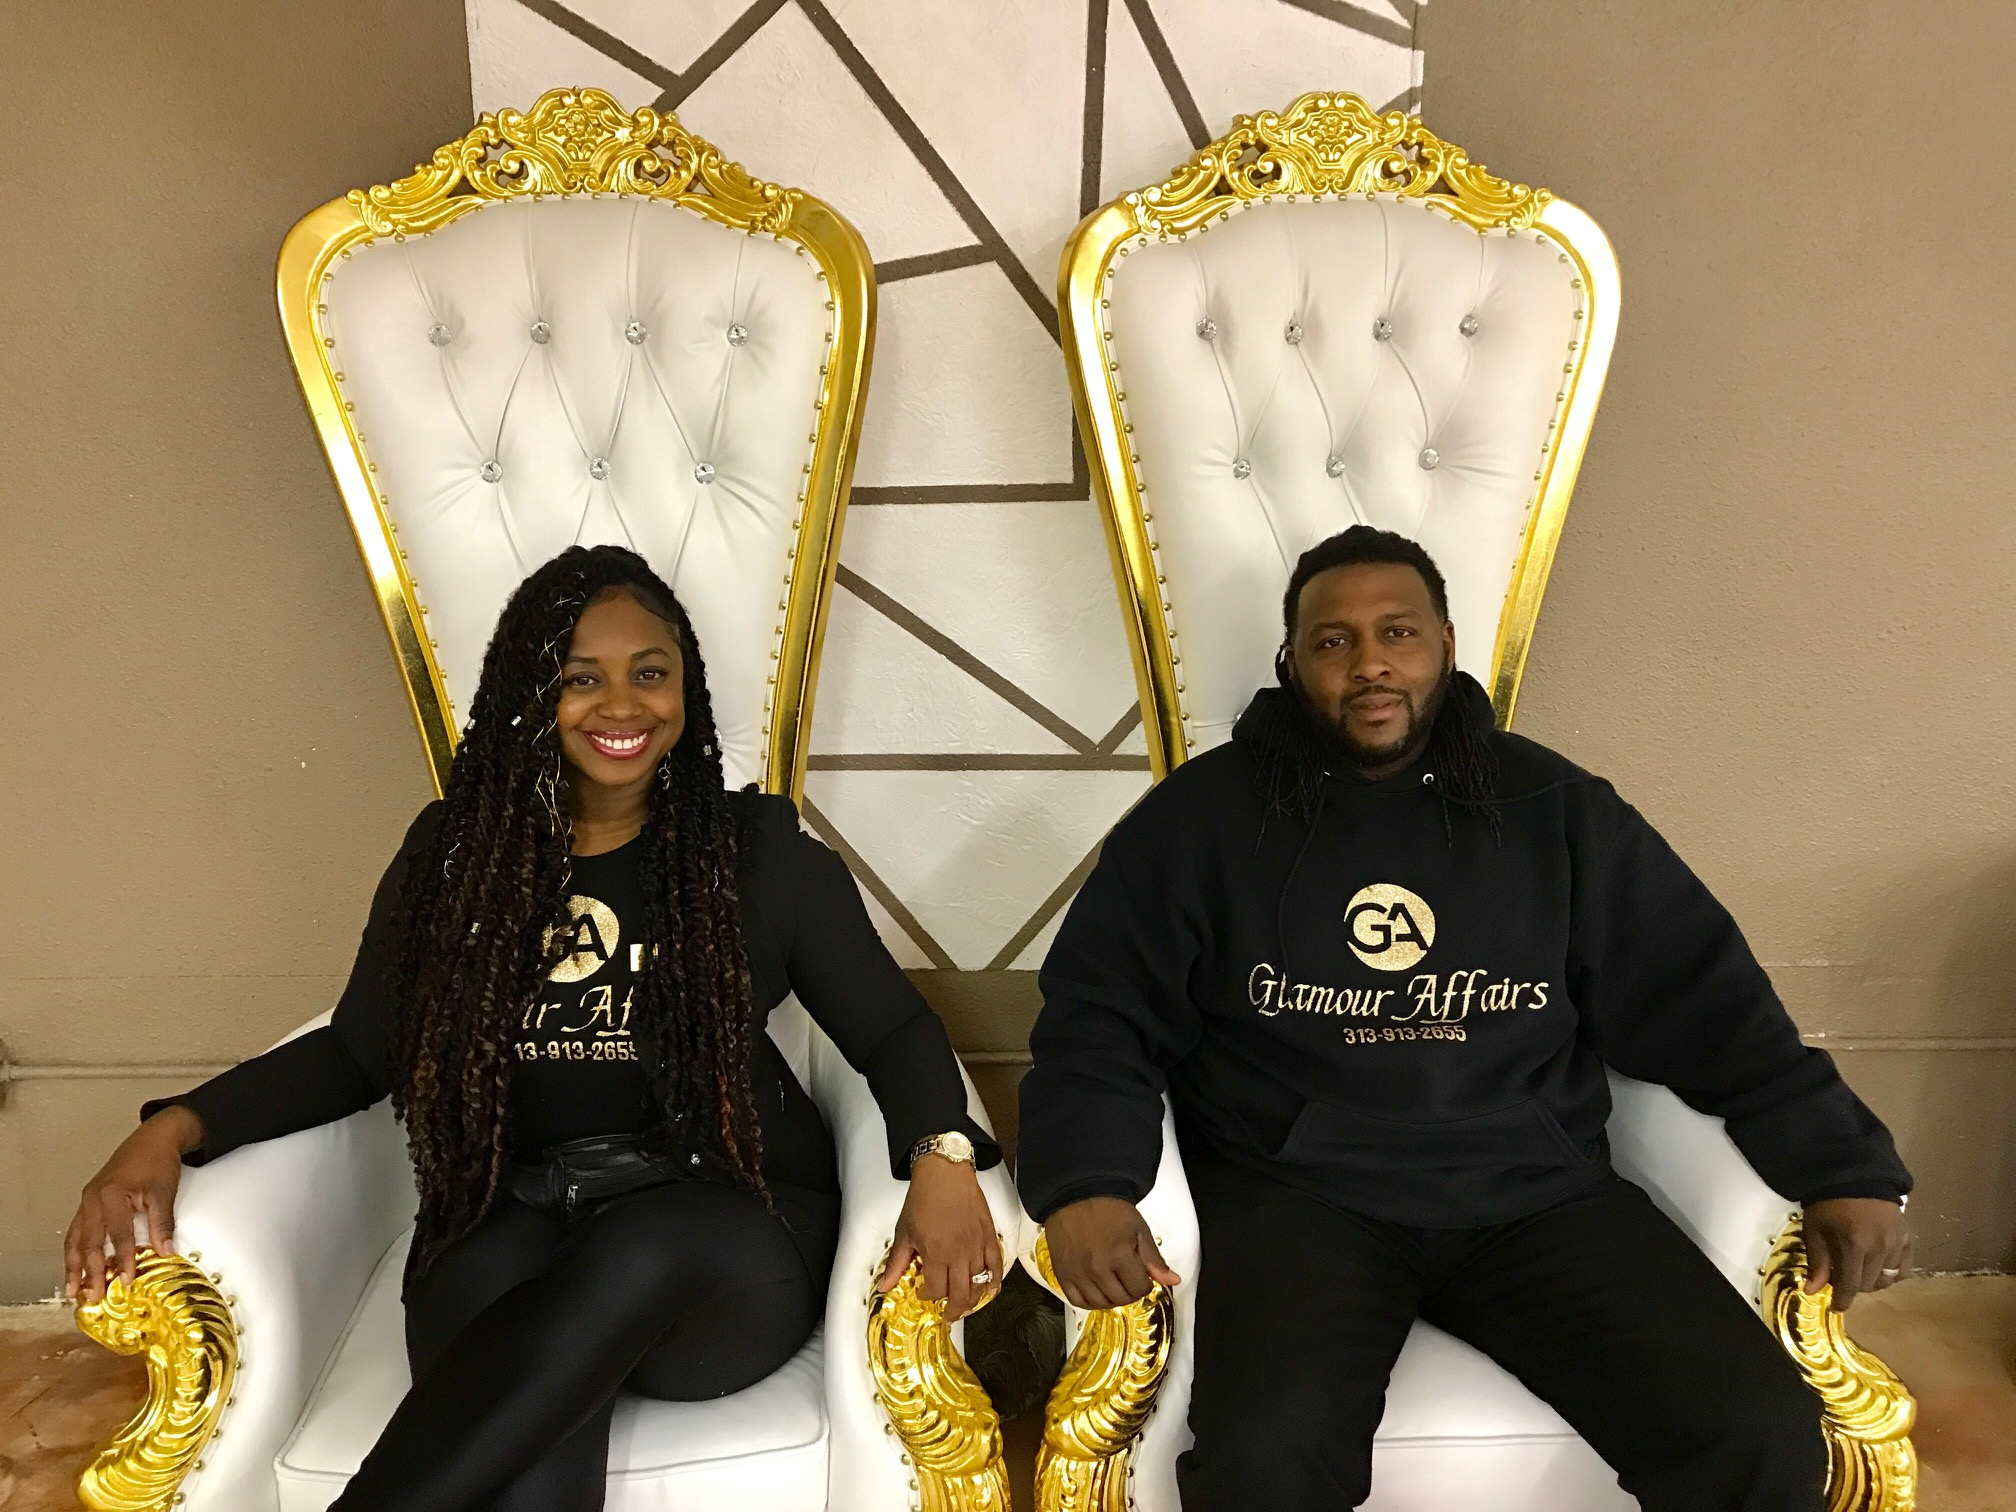 Rhonda and toyale agee - Owners, Glamour Affairs